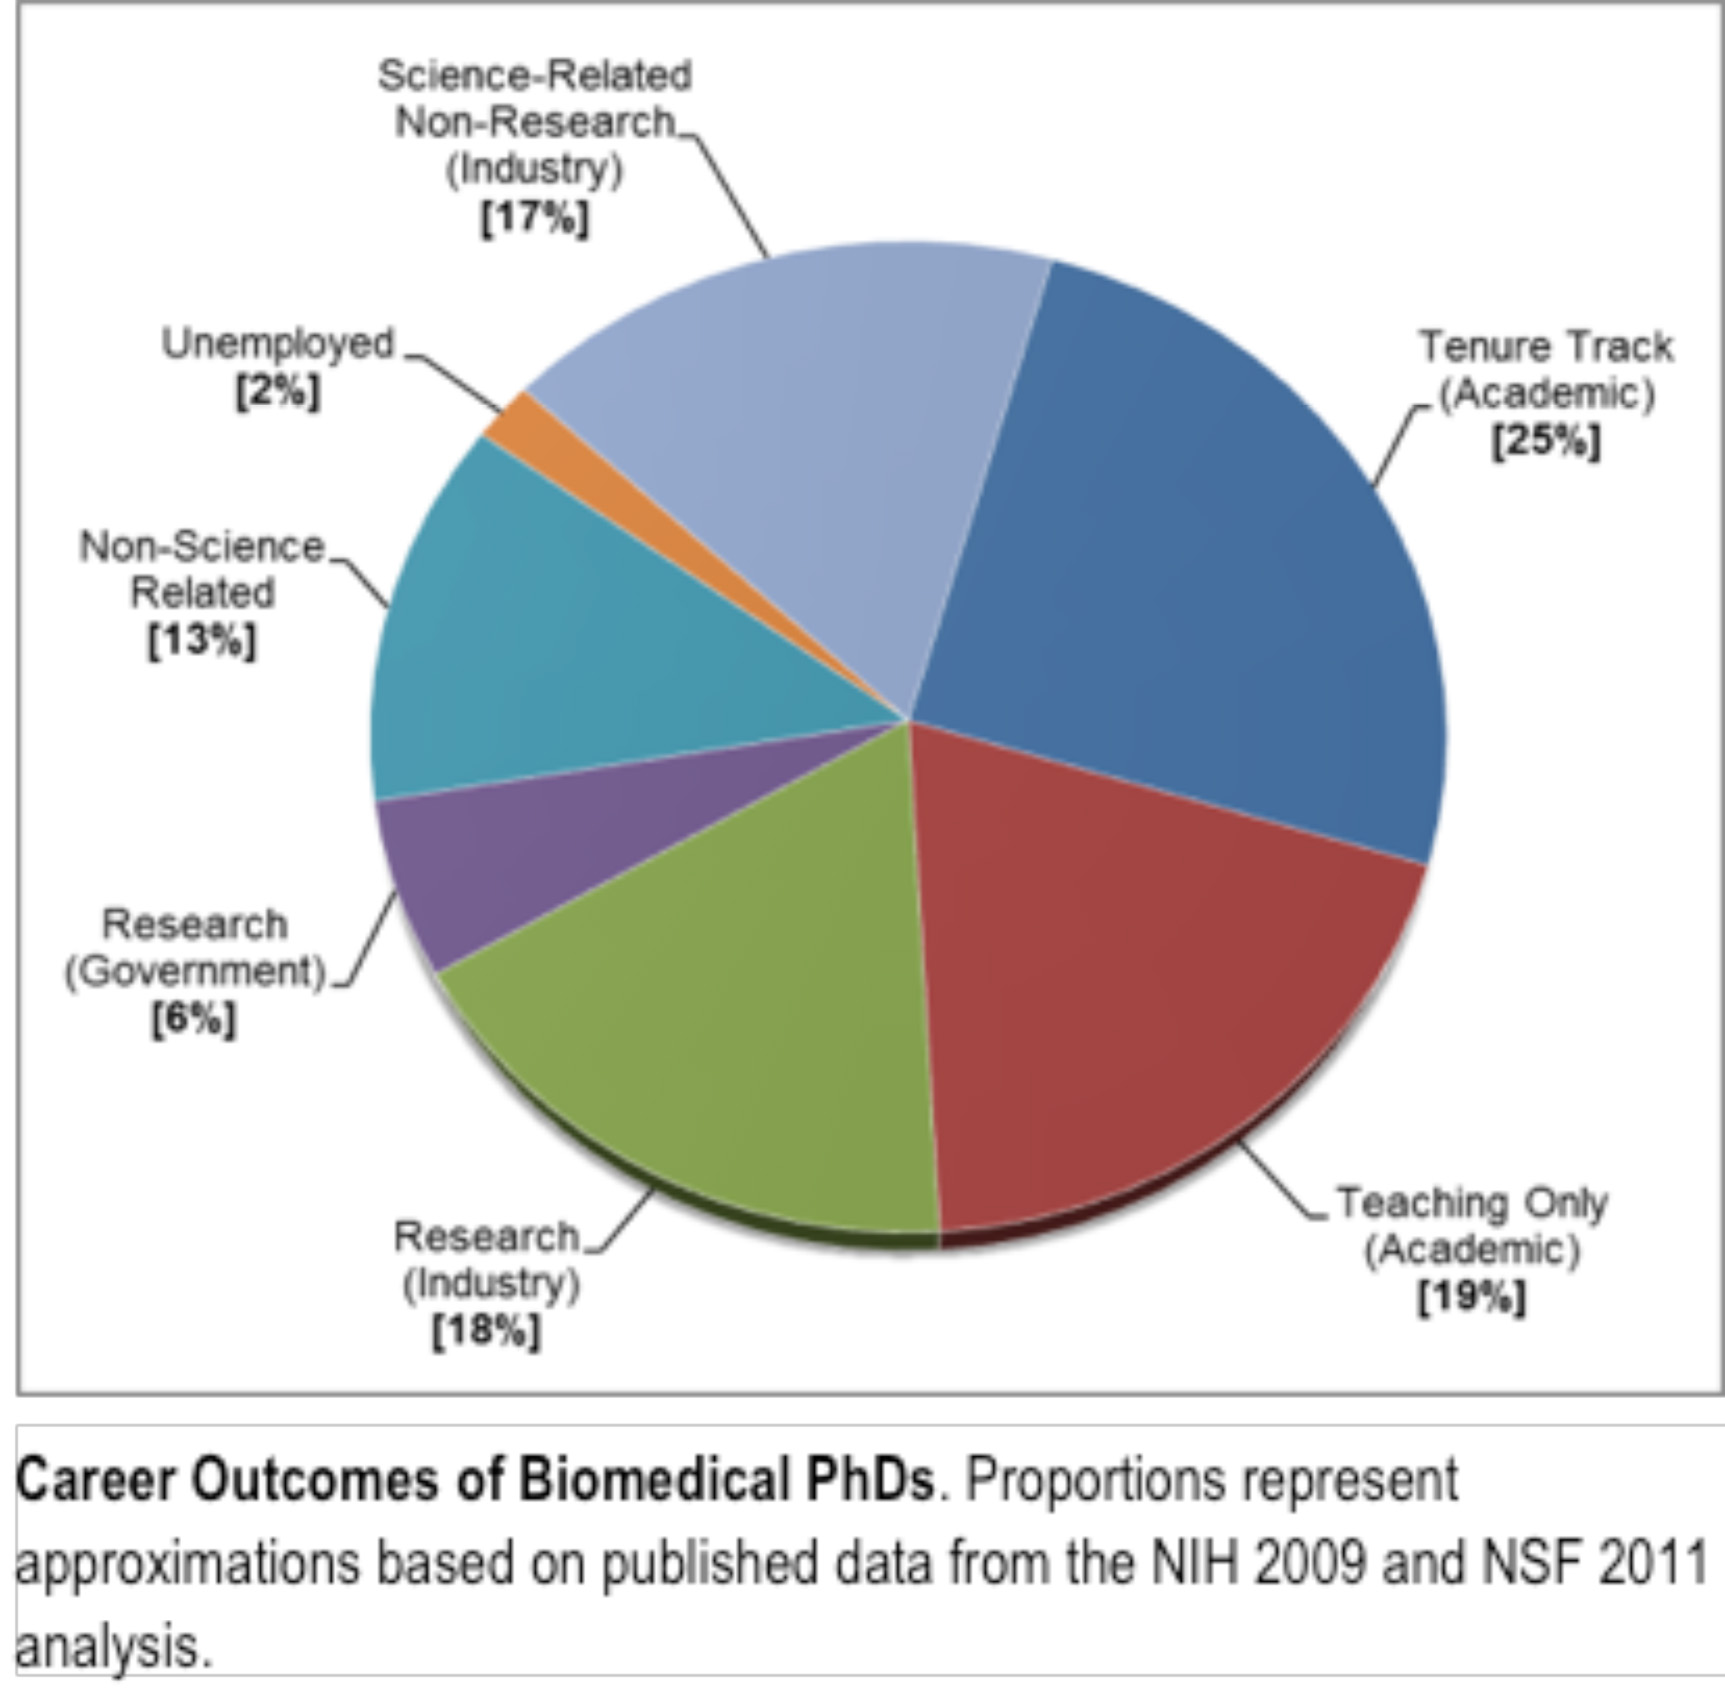 Where Will Your Graduate Education Take You